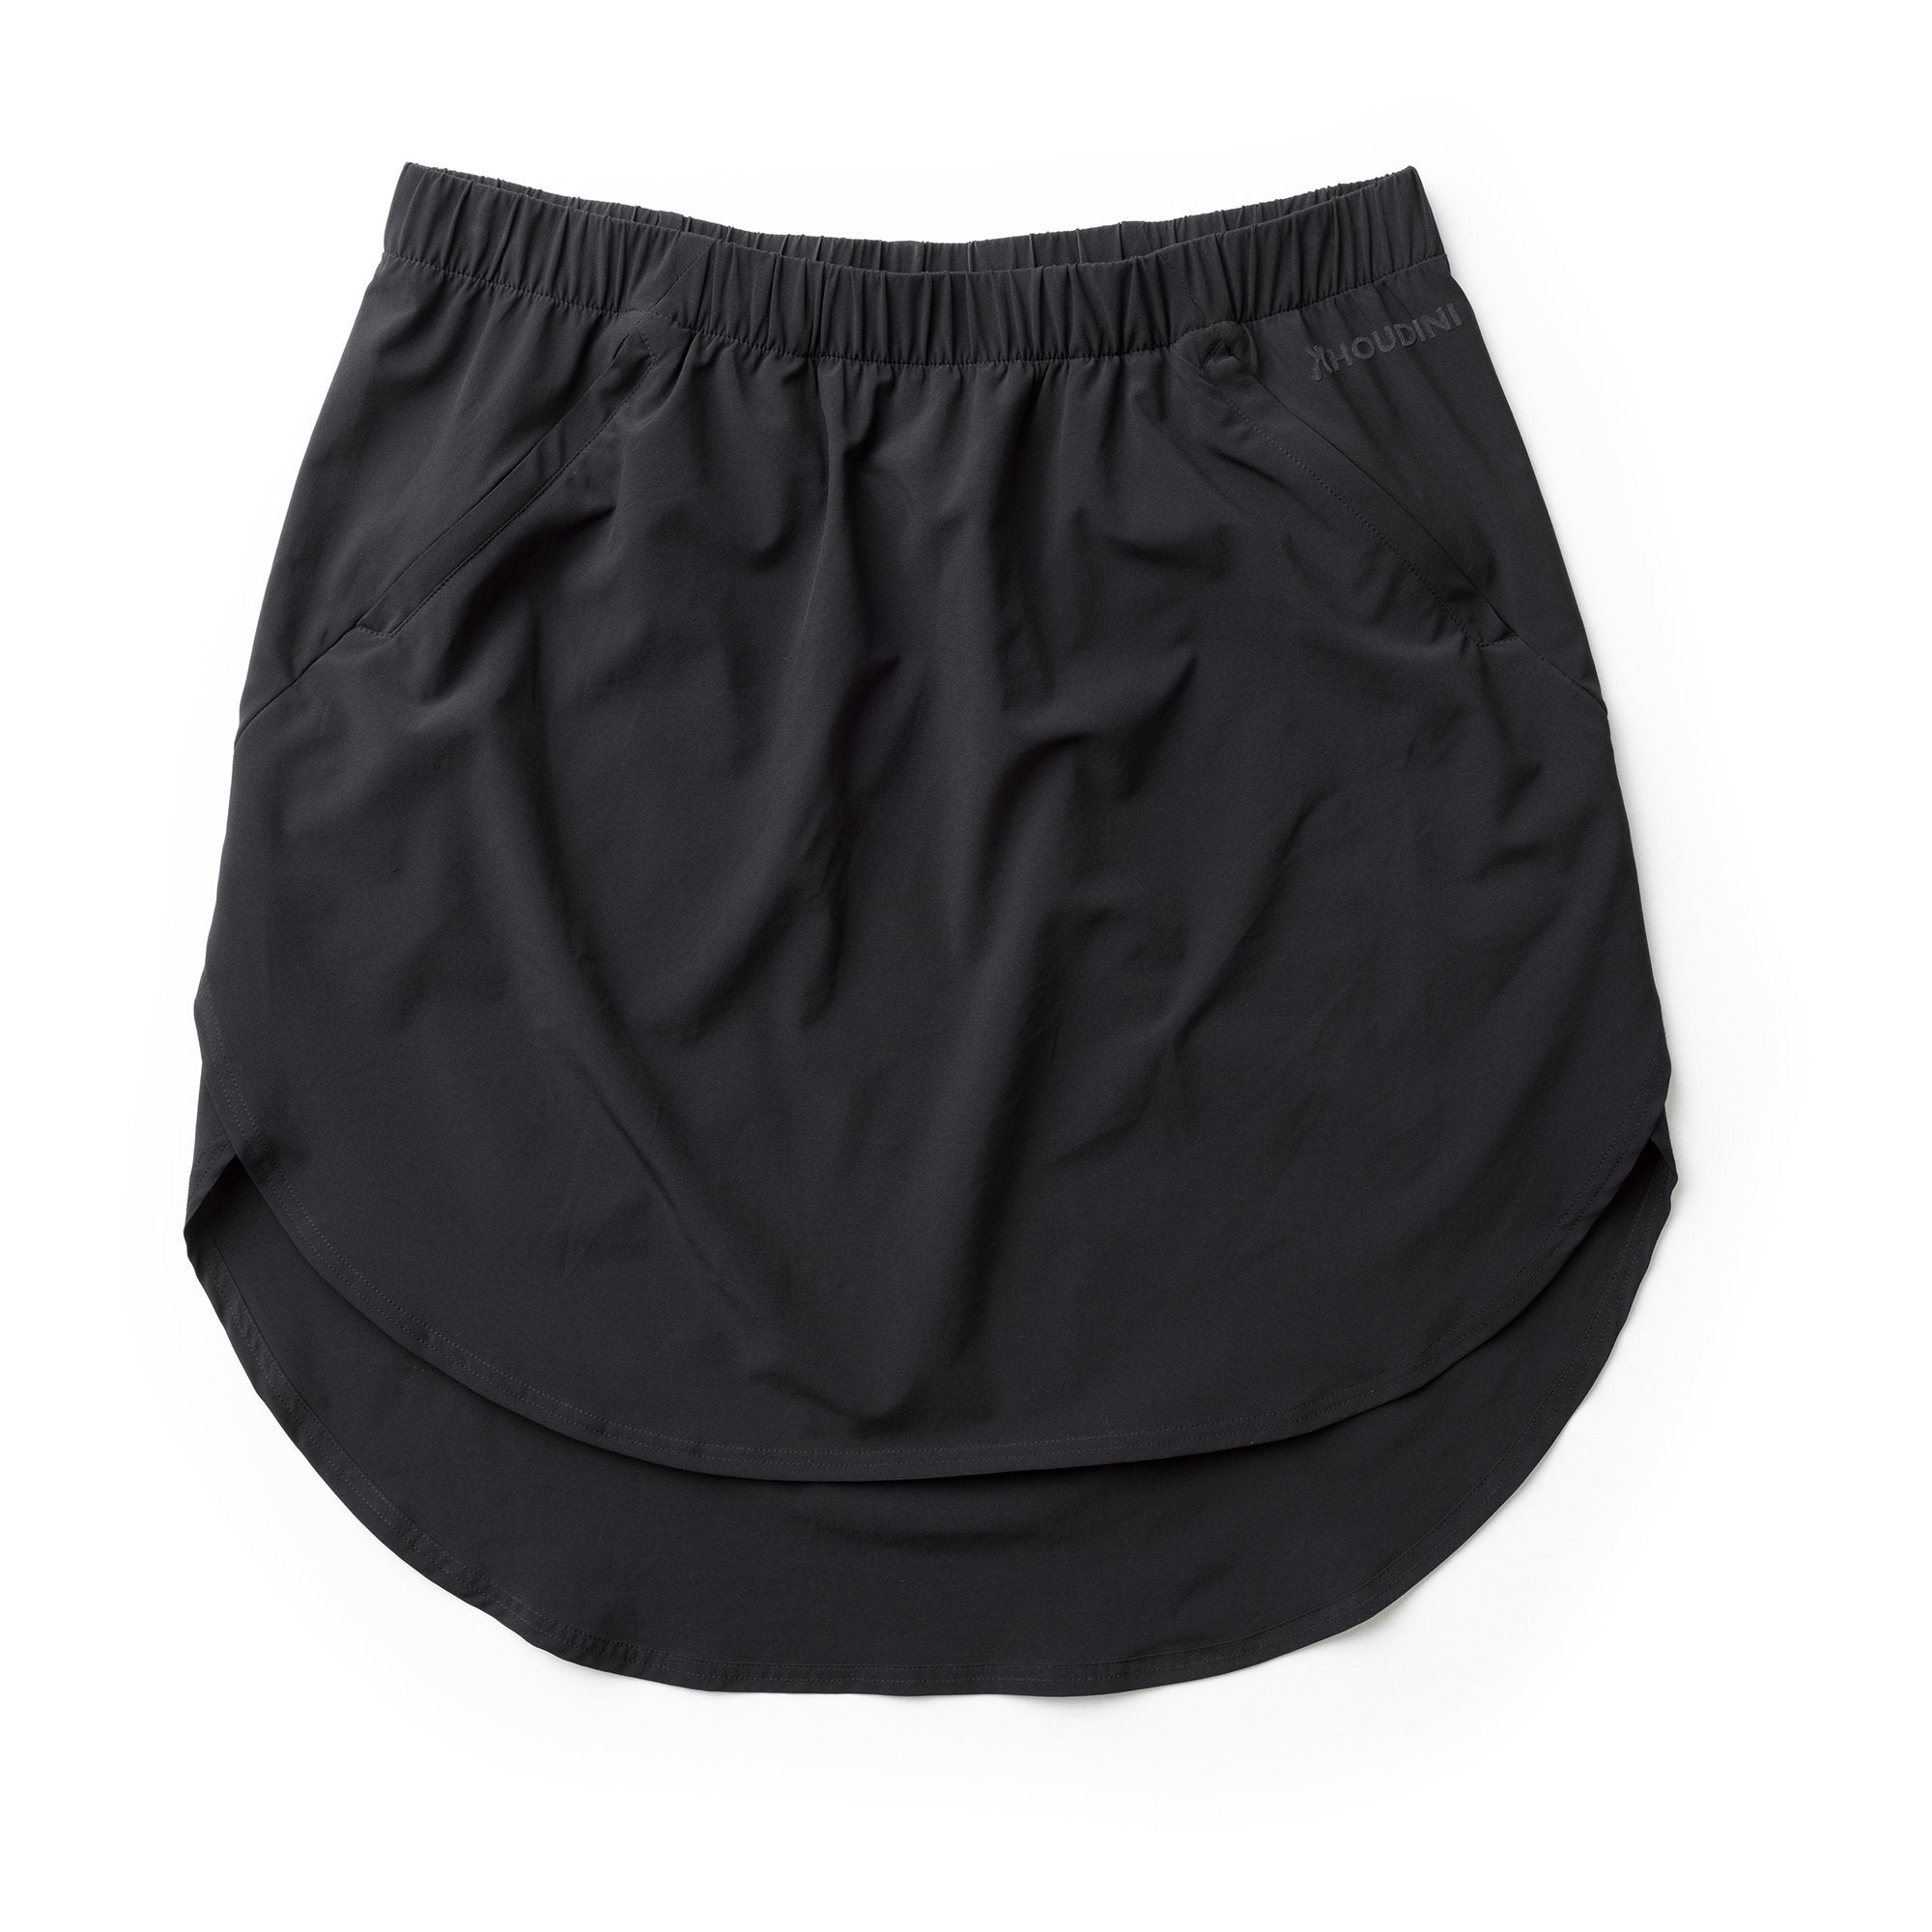 Duffy Skirt - True Black - Dam - Vindpinad